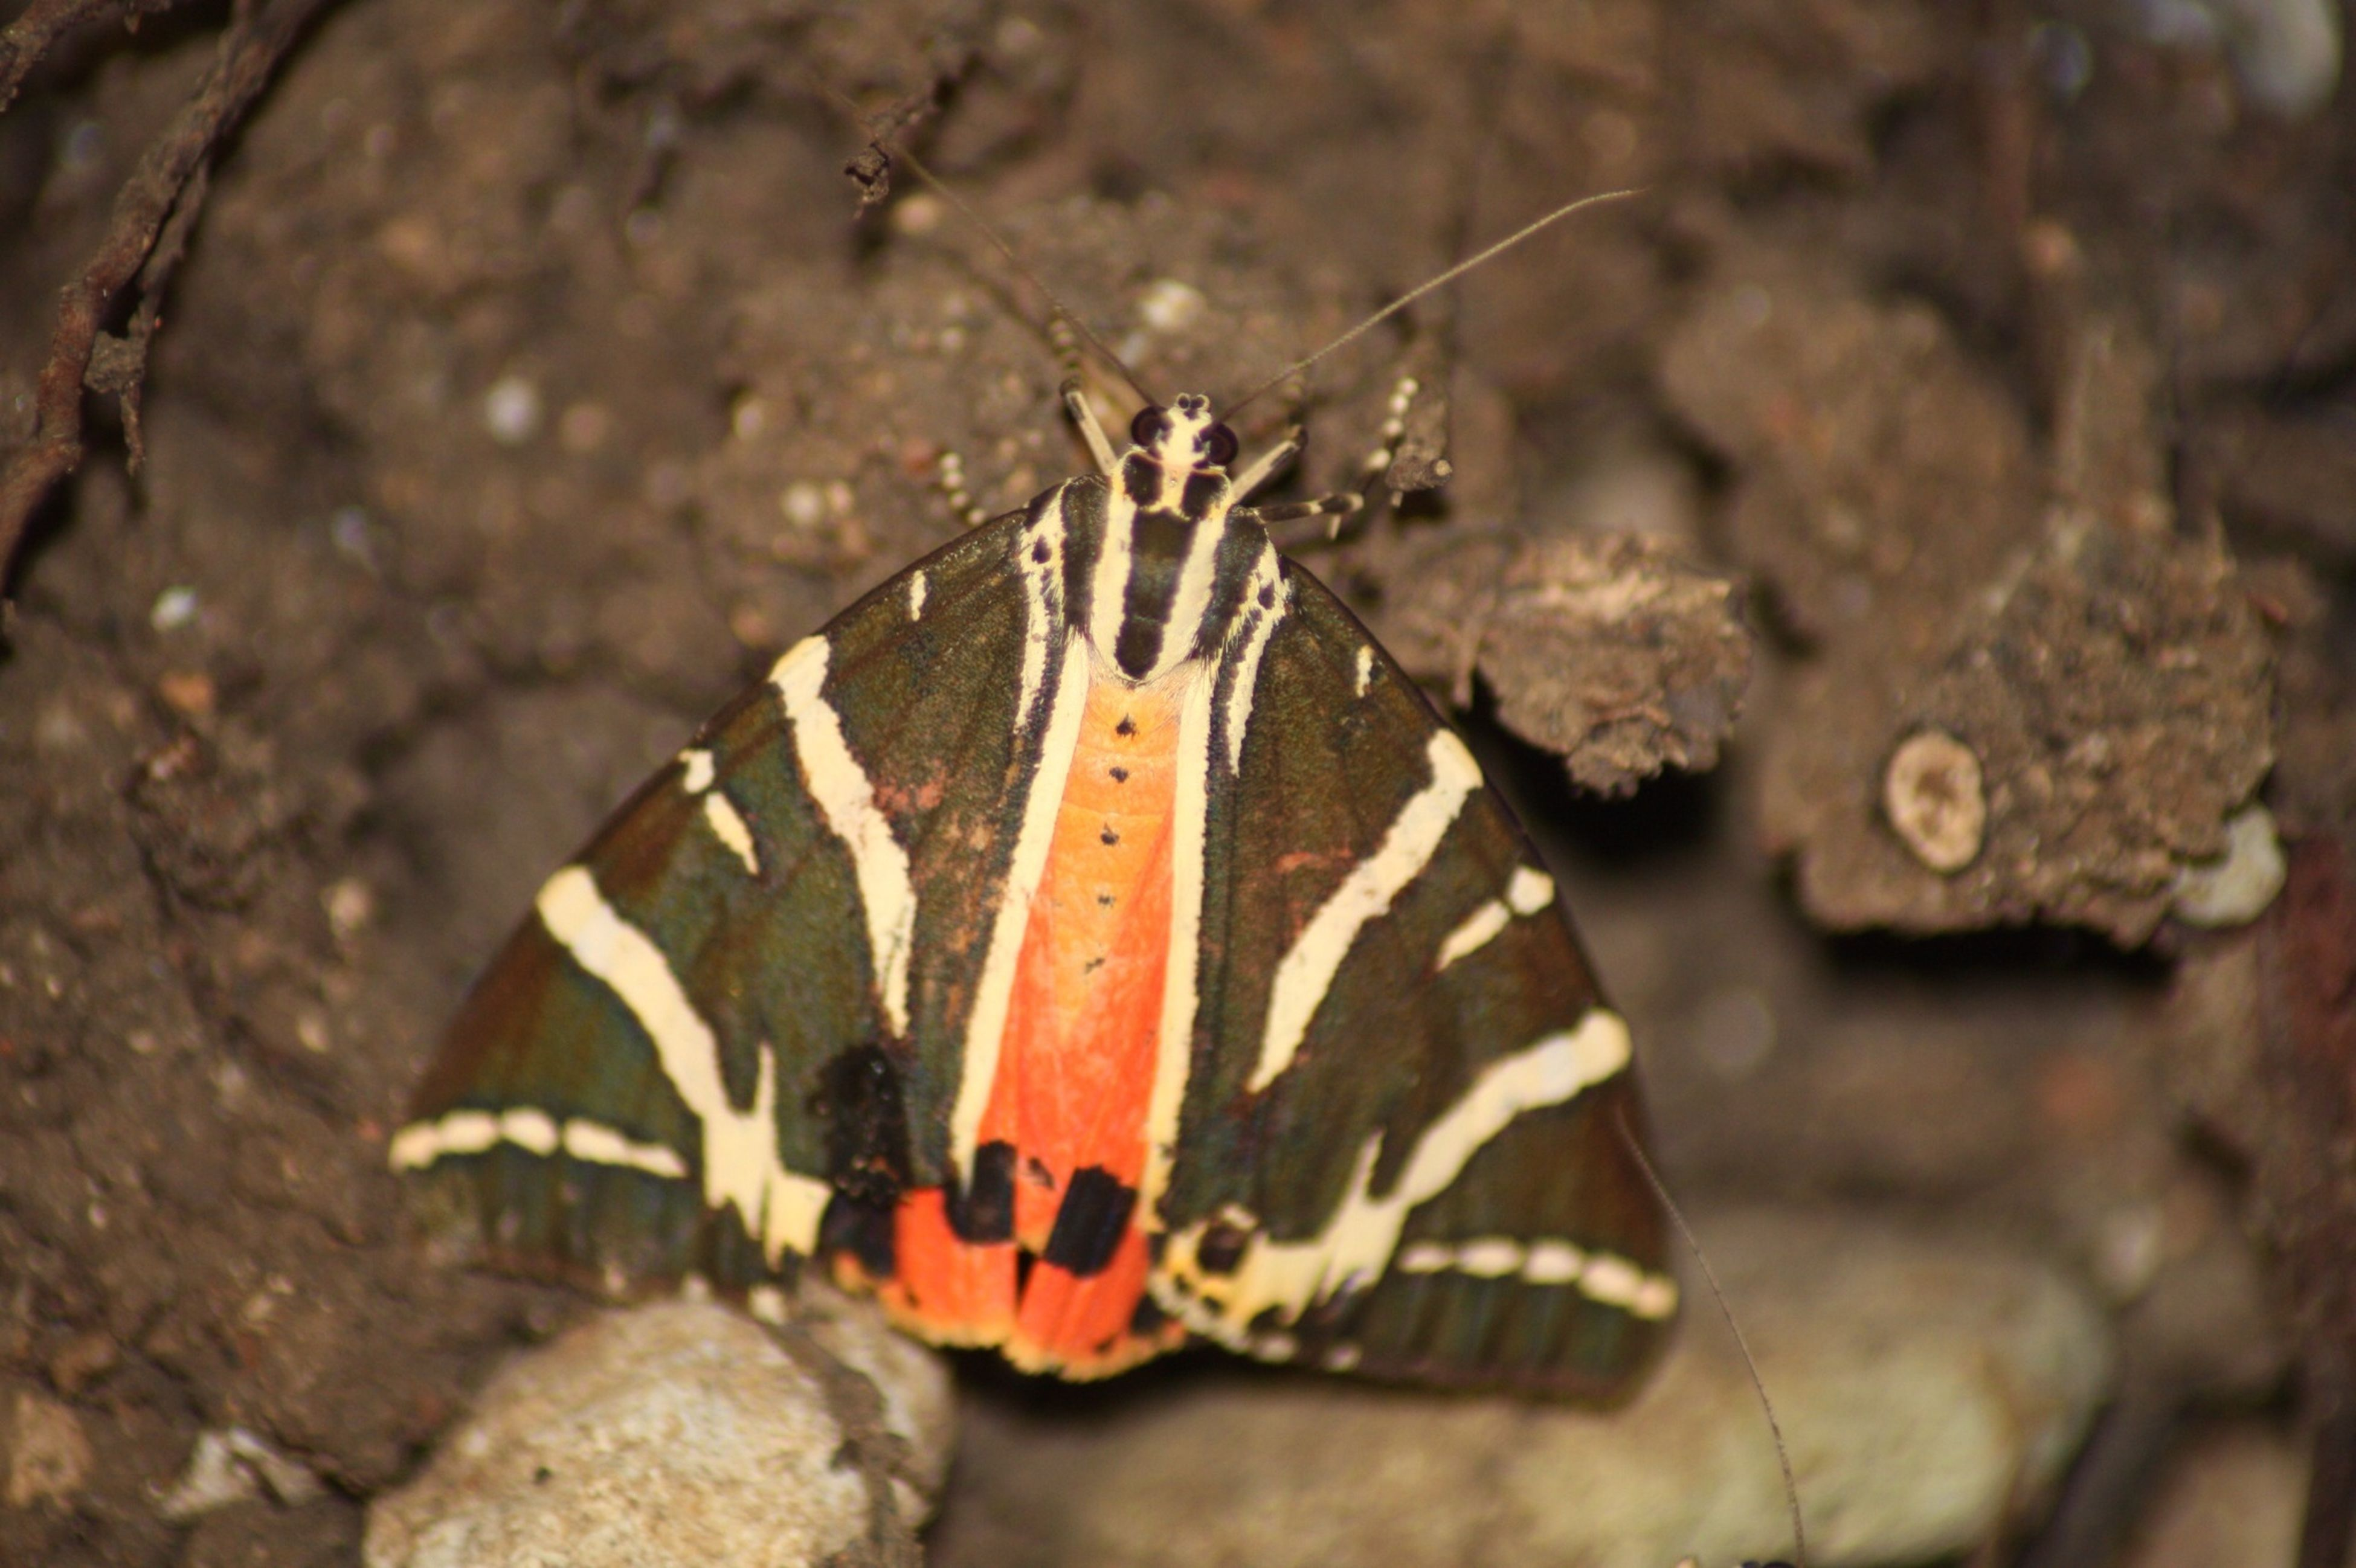 insect, close-up, focus on foreground, animals in the wild, one animal, animal themes, natural pattern, rock - object, wildlife, high angle view, nature, outdoors, day, damaged, butterfly - insect, butterfly, no people, ground, selective focus, textured